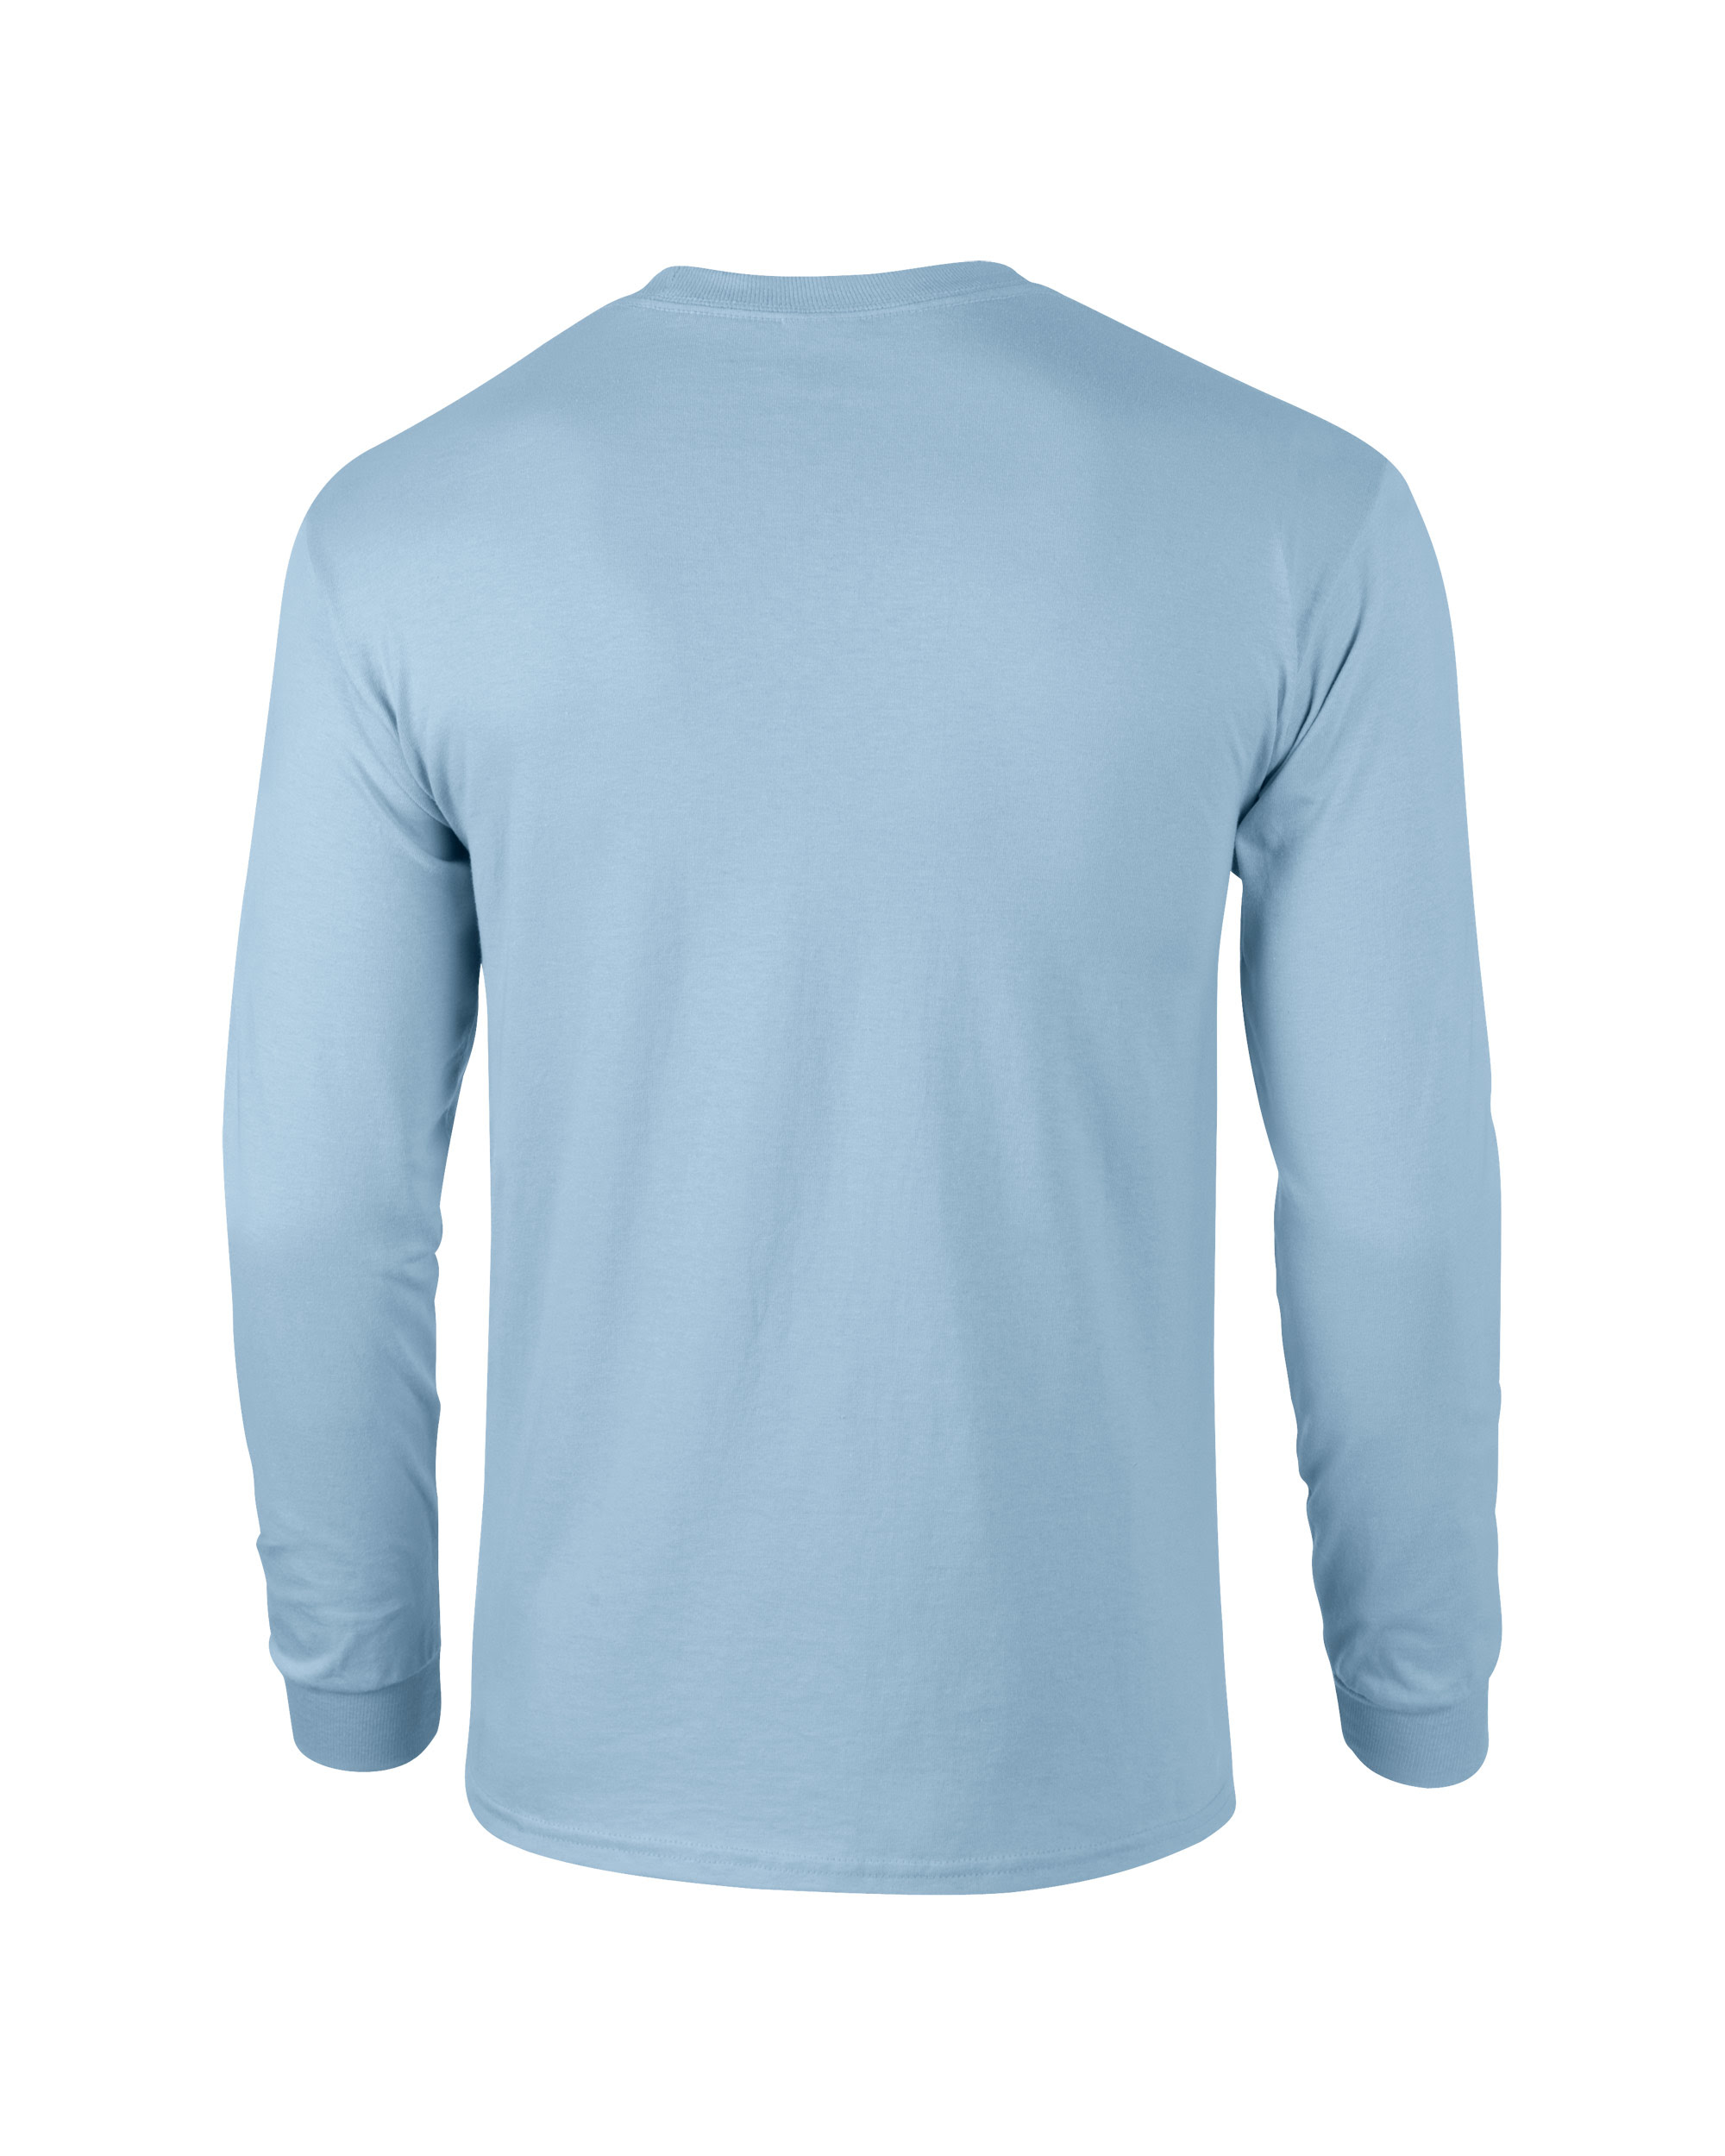 Light blue long sleeve t shirt special occasion year